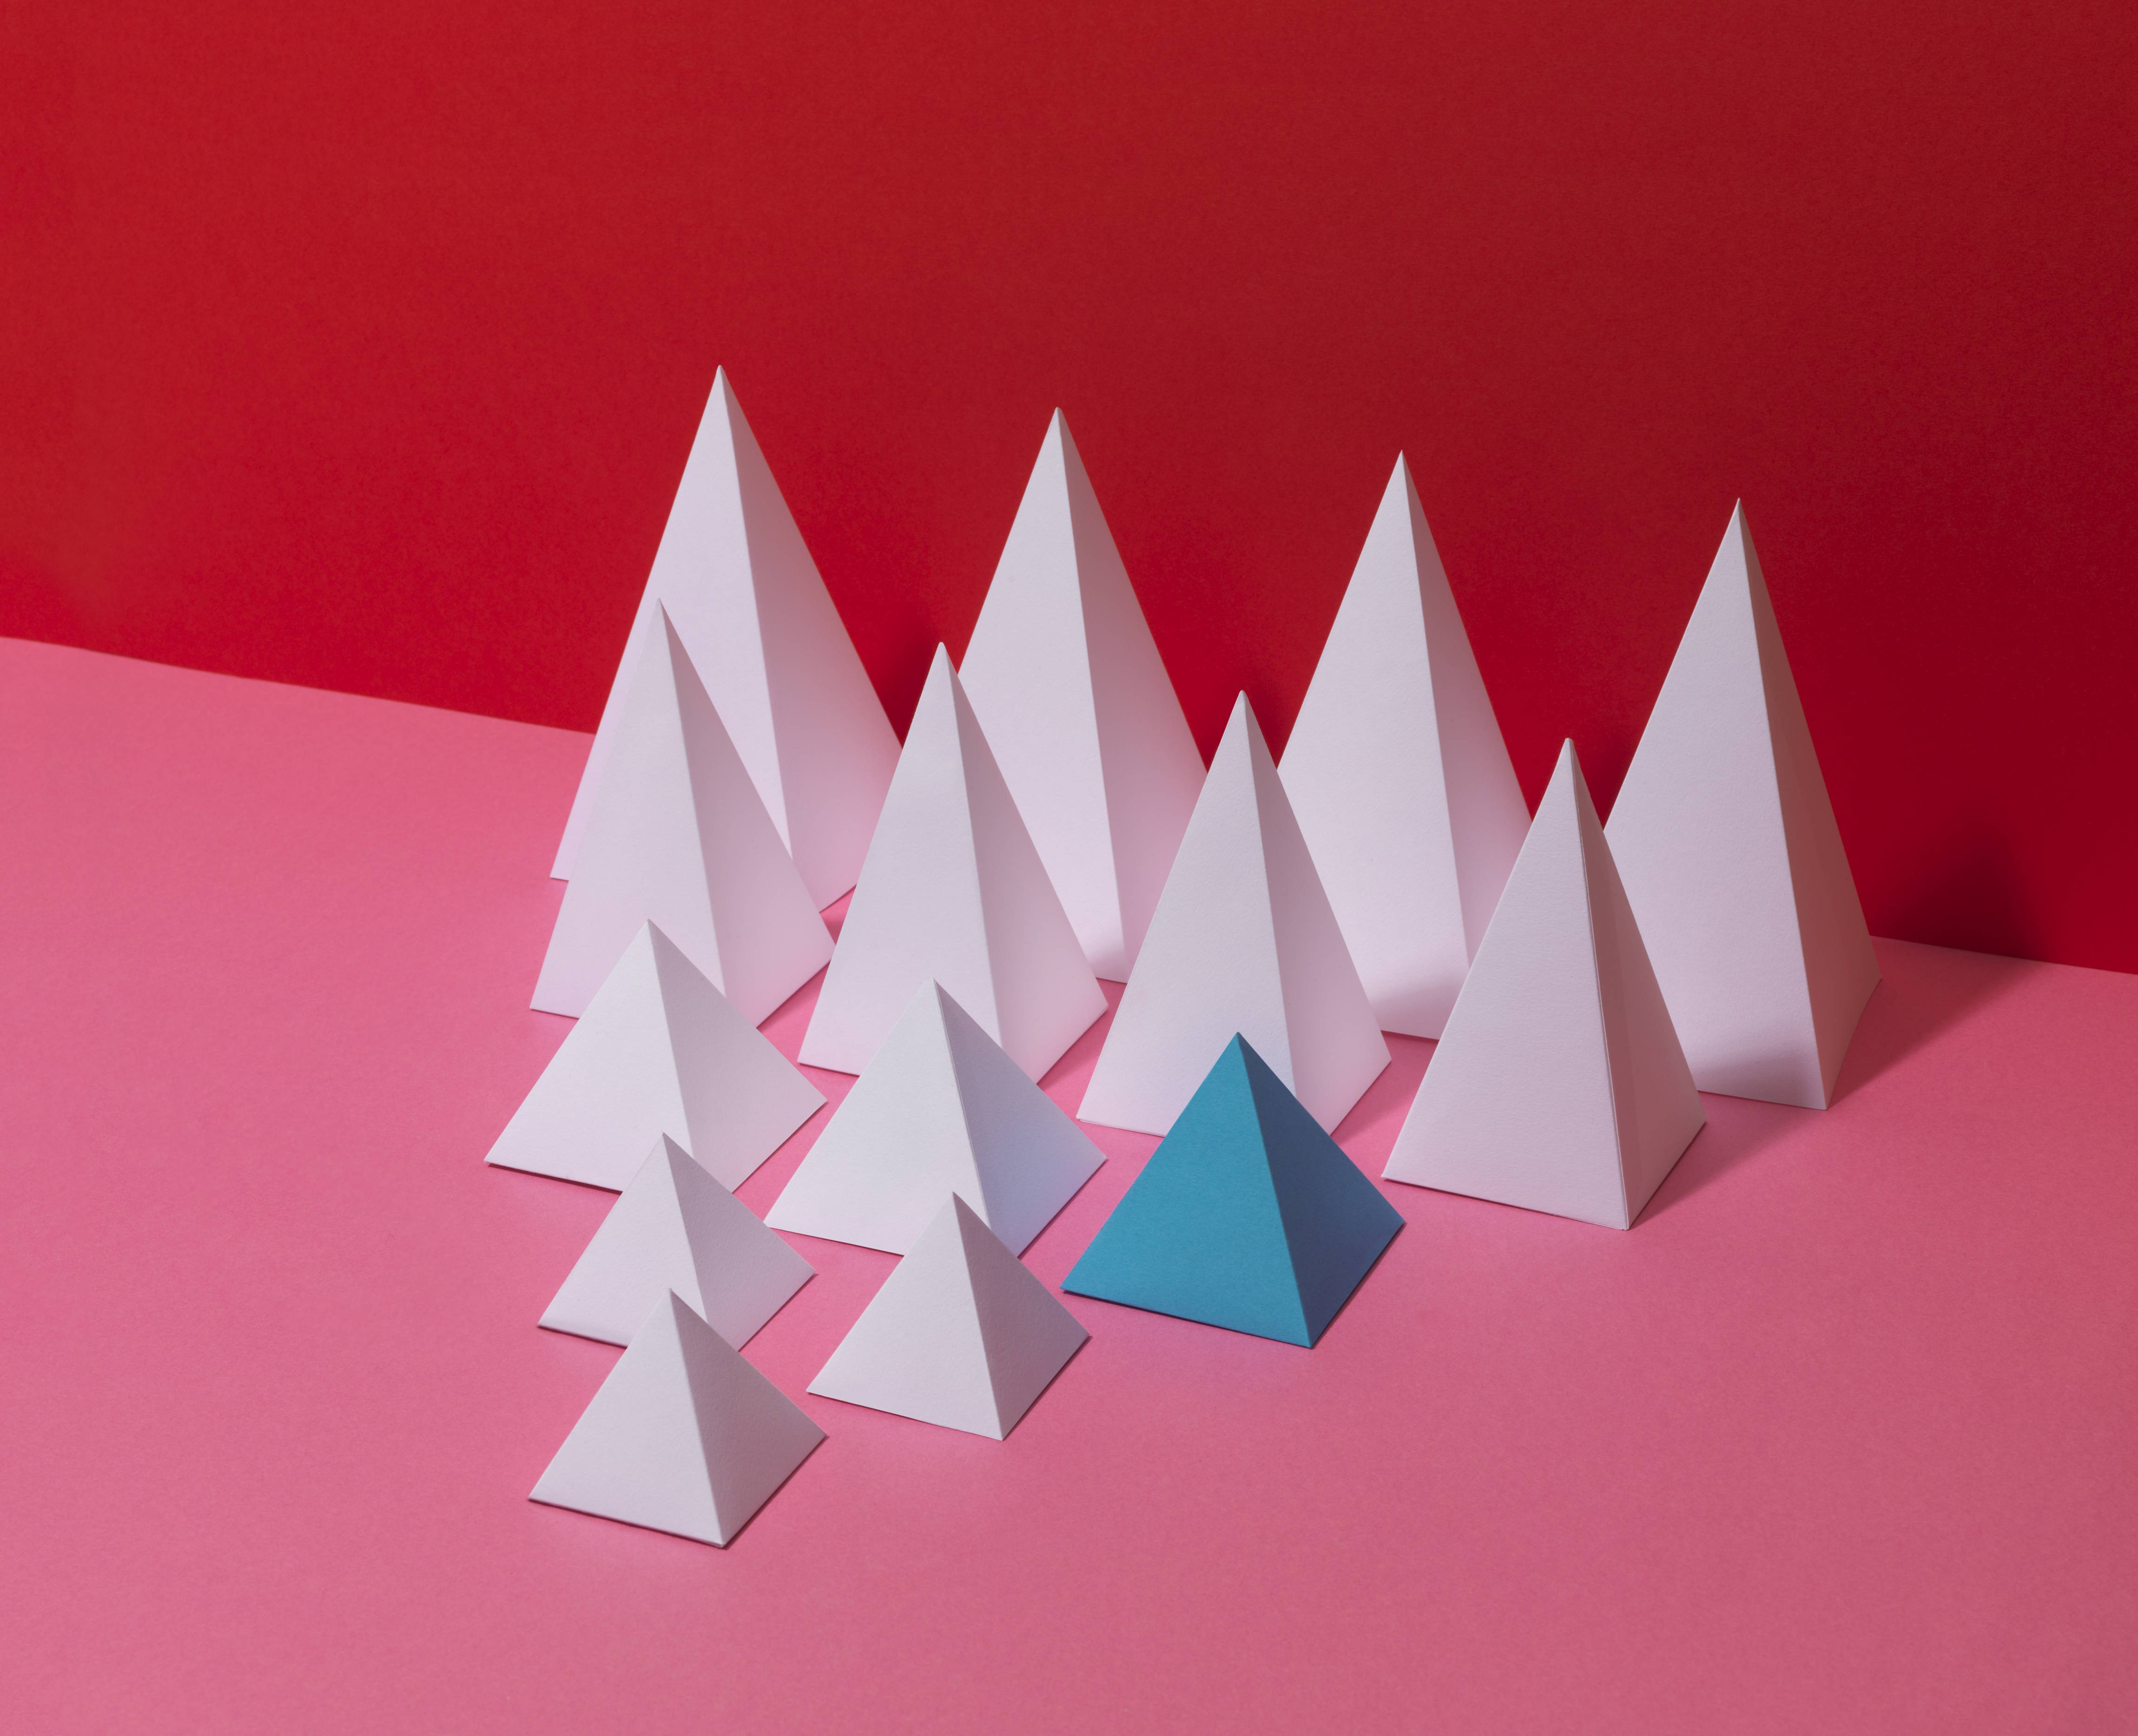 Group of white pyramids, one blue pyramid, on red background